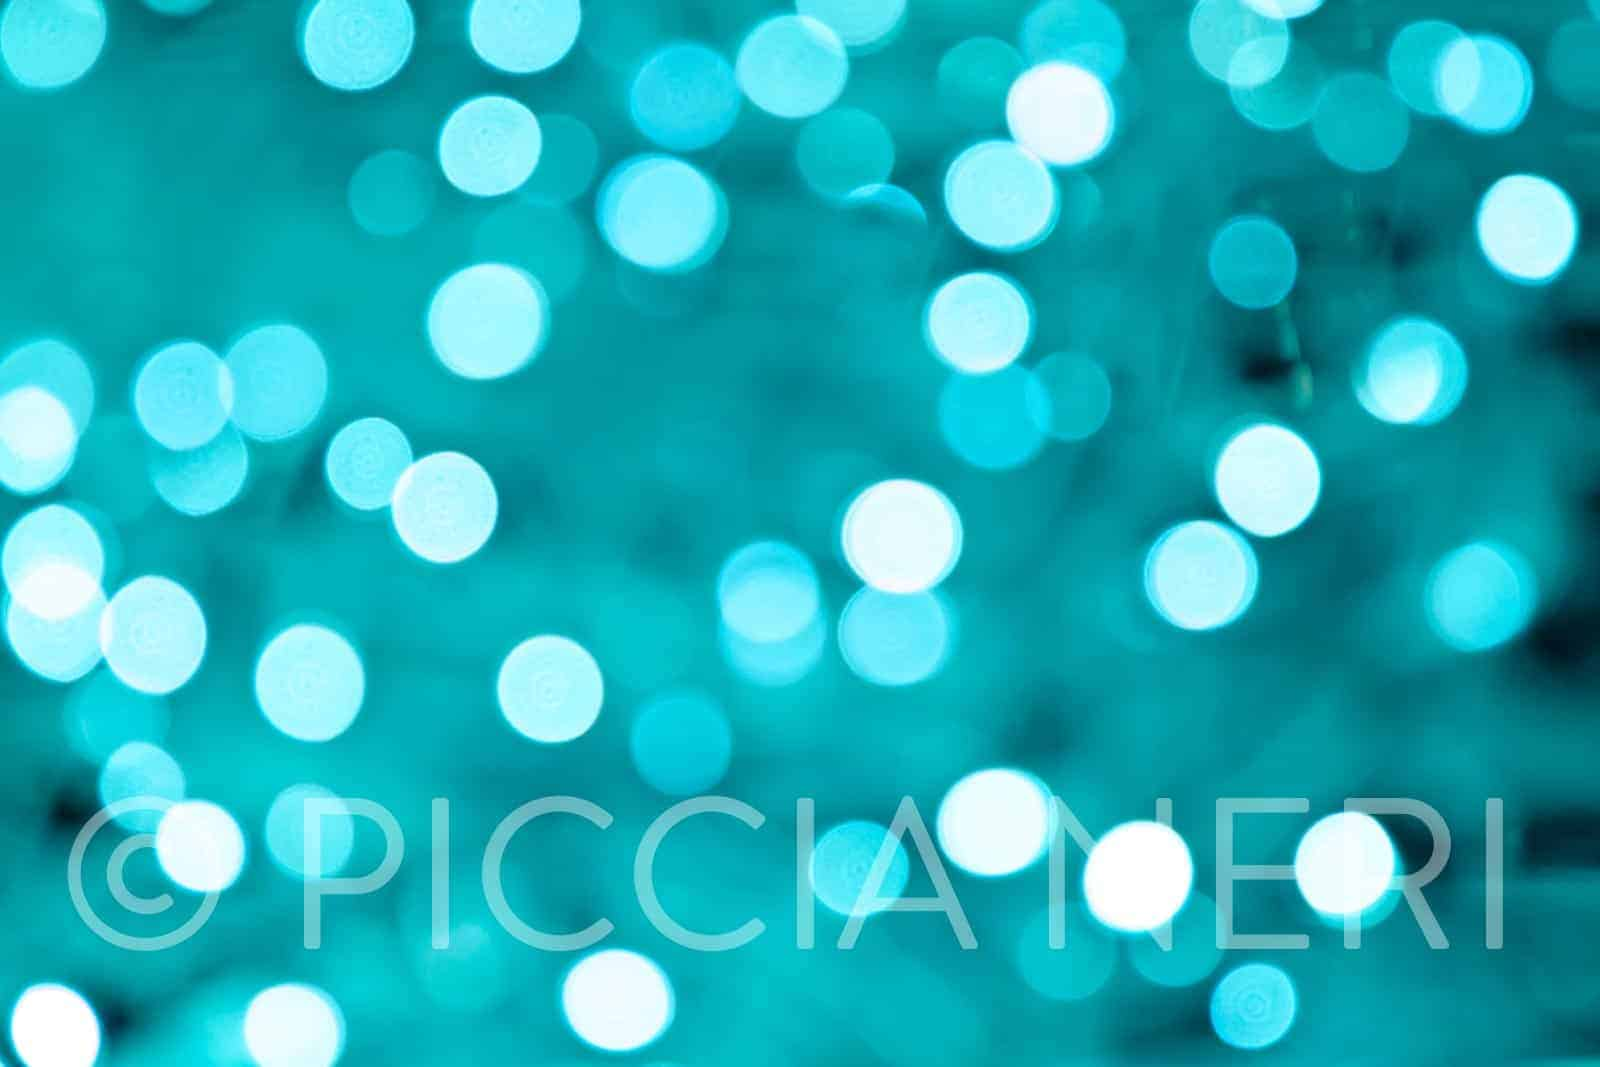 Free photo of bokeh light pattern. Suitable for Christmas card or decoration.